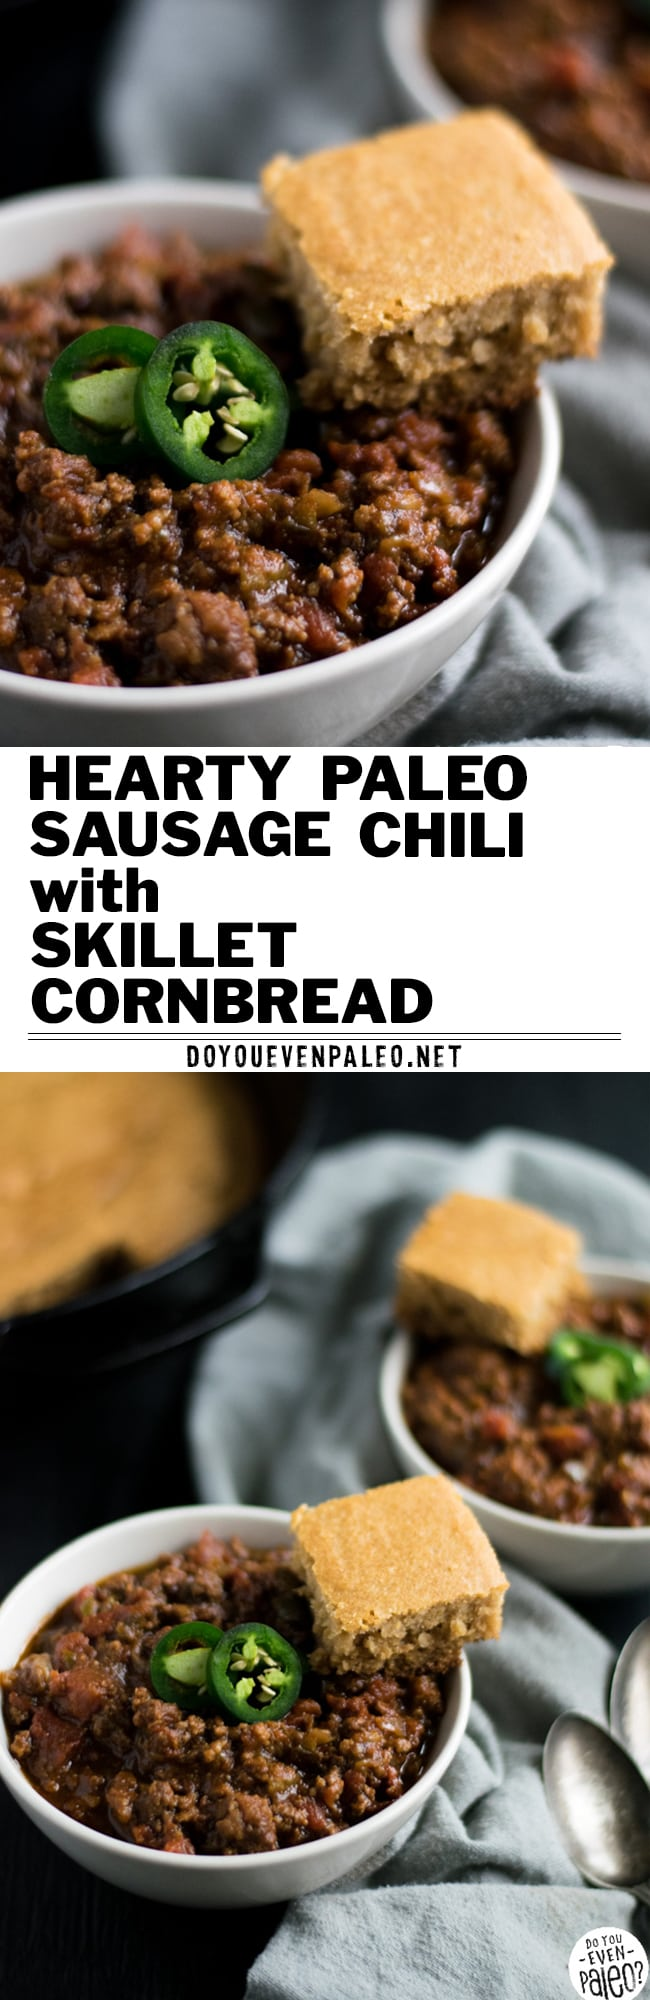 A perfect meal for cold weather - spicy paleo sausage chili with skillet cornbread | DoYouEvenPaleo.net #paleo #glutenfree #whole30